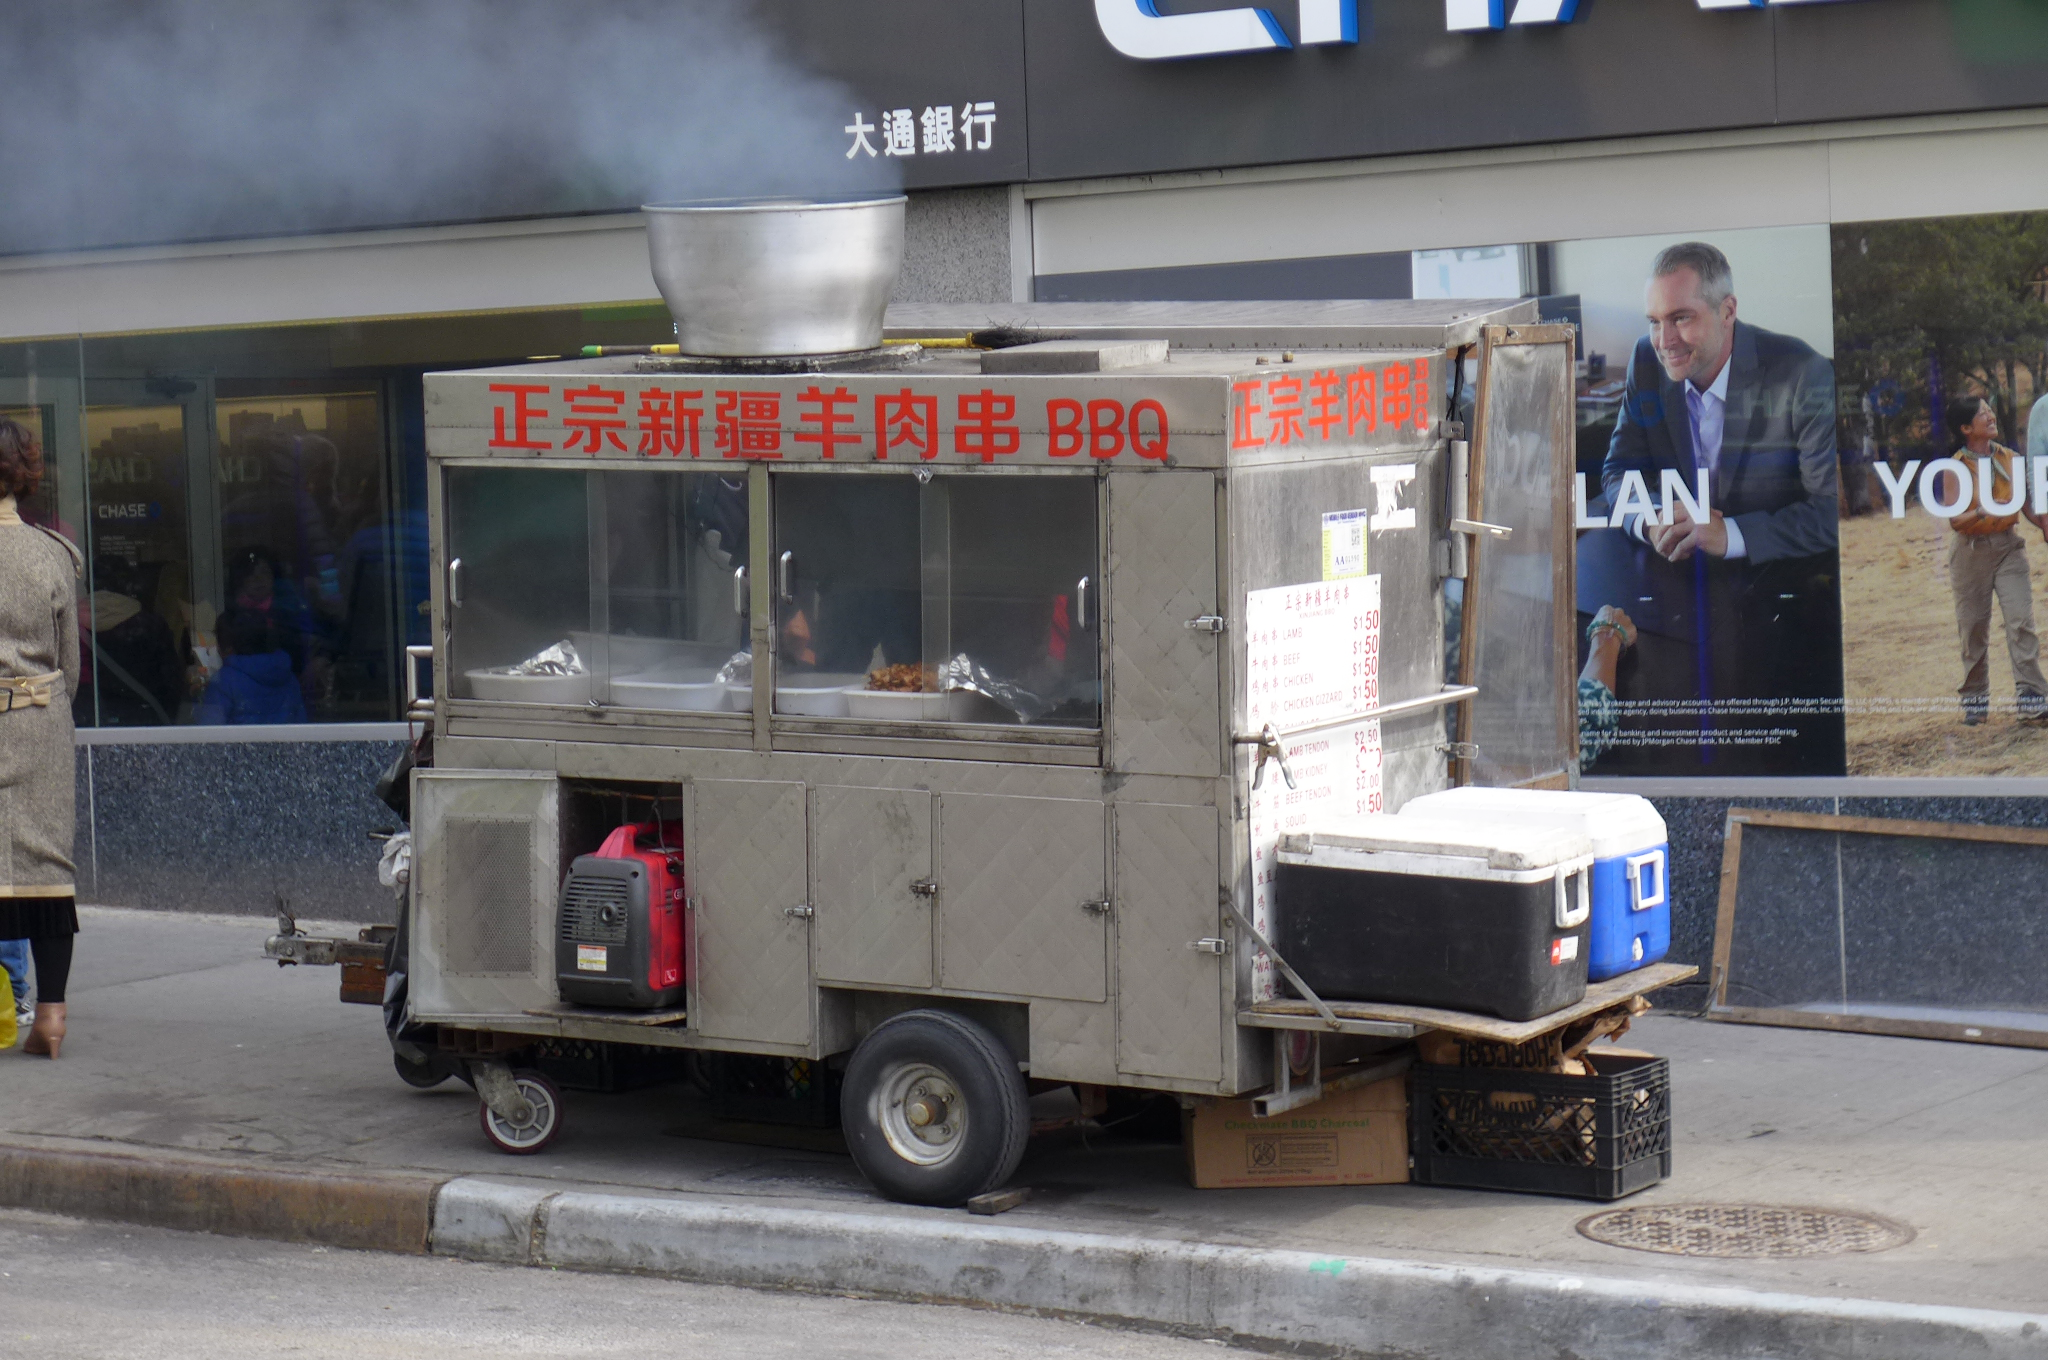 A metal food cart on the sidewalk with steam coming out the top